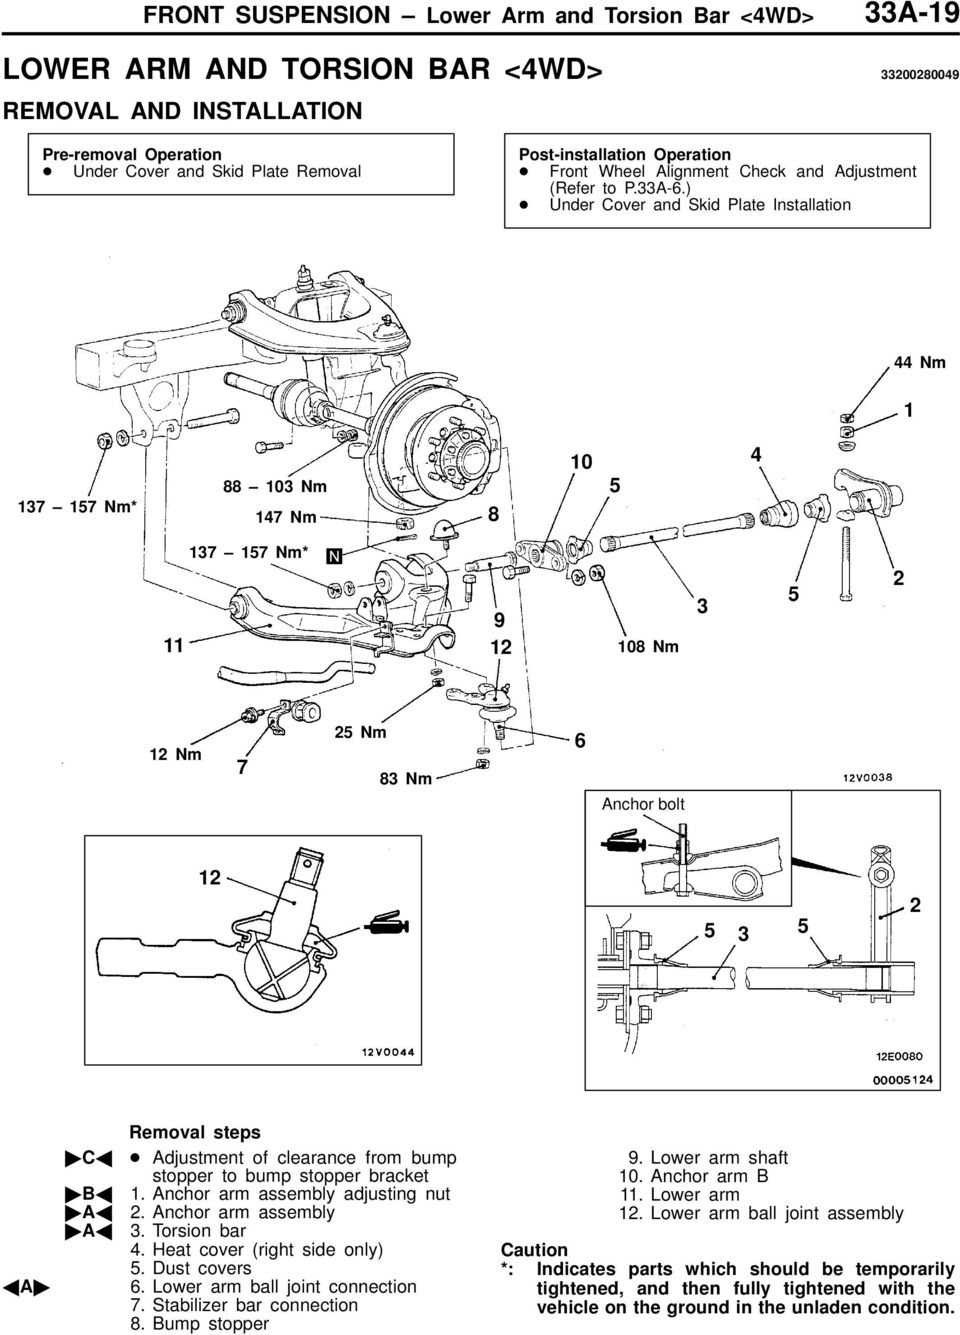 Front Suspension Click On The Applicable Bookmark To Selected Chevy Torsion Bar Diagram Under Cover And Skid Plate Installation 44 Nm 1 137 157 88 103